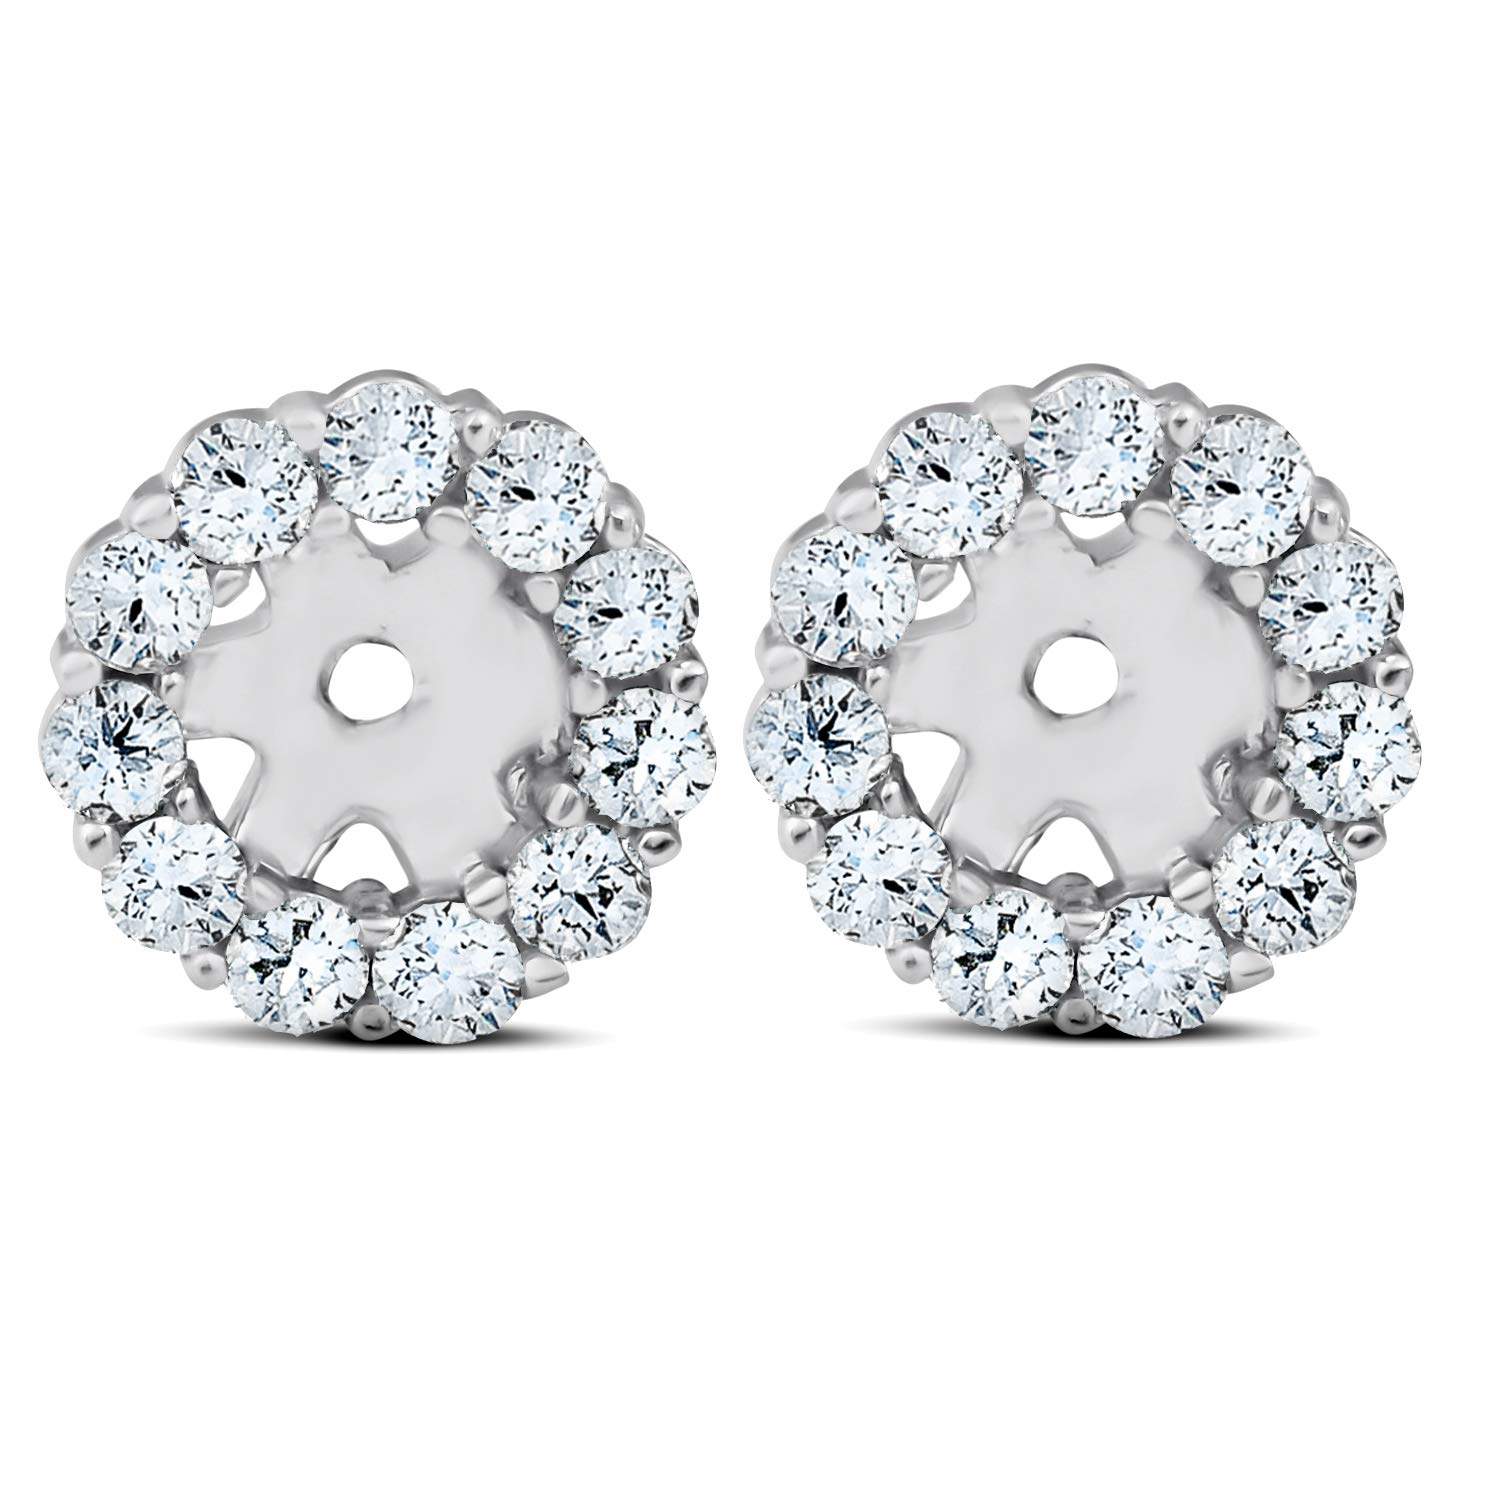 3/8ct Halo Diamond Earring Jackets 14K White Gold Fits 1/4ct Stones (4mm) by P3 POMPEII3